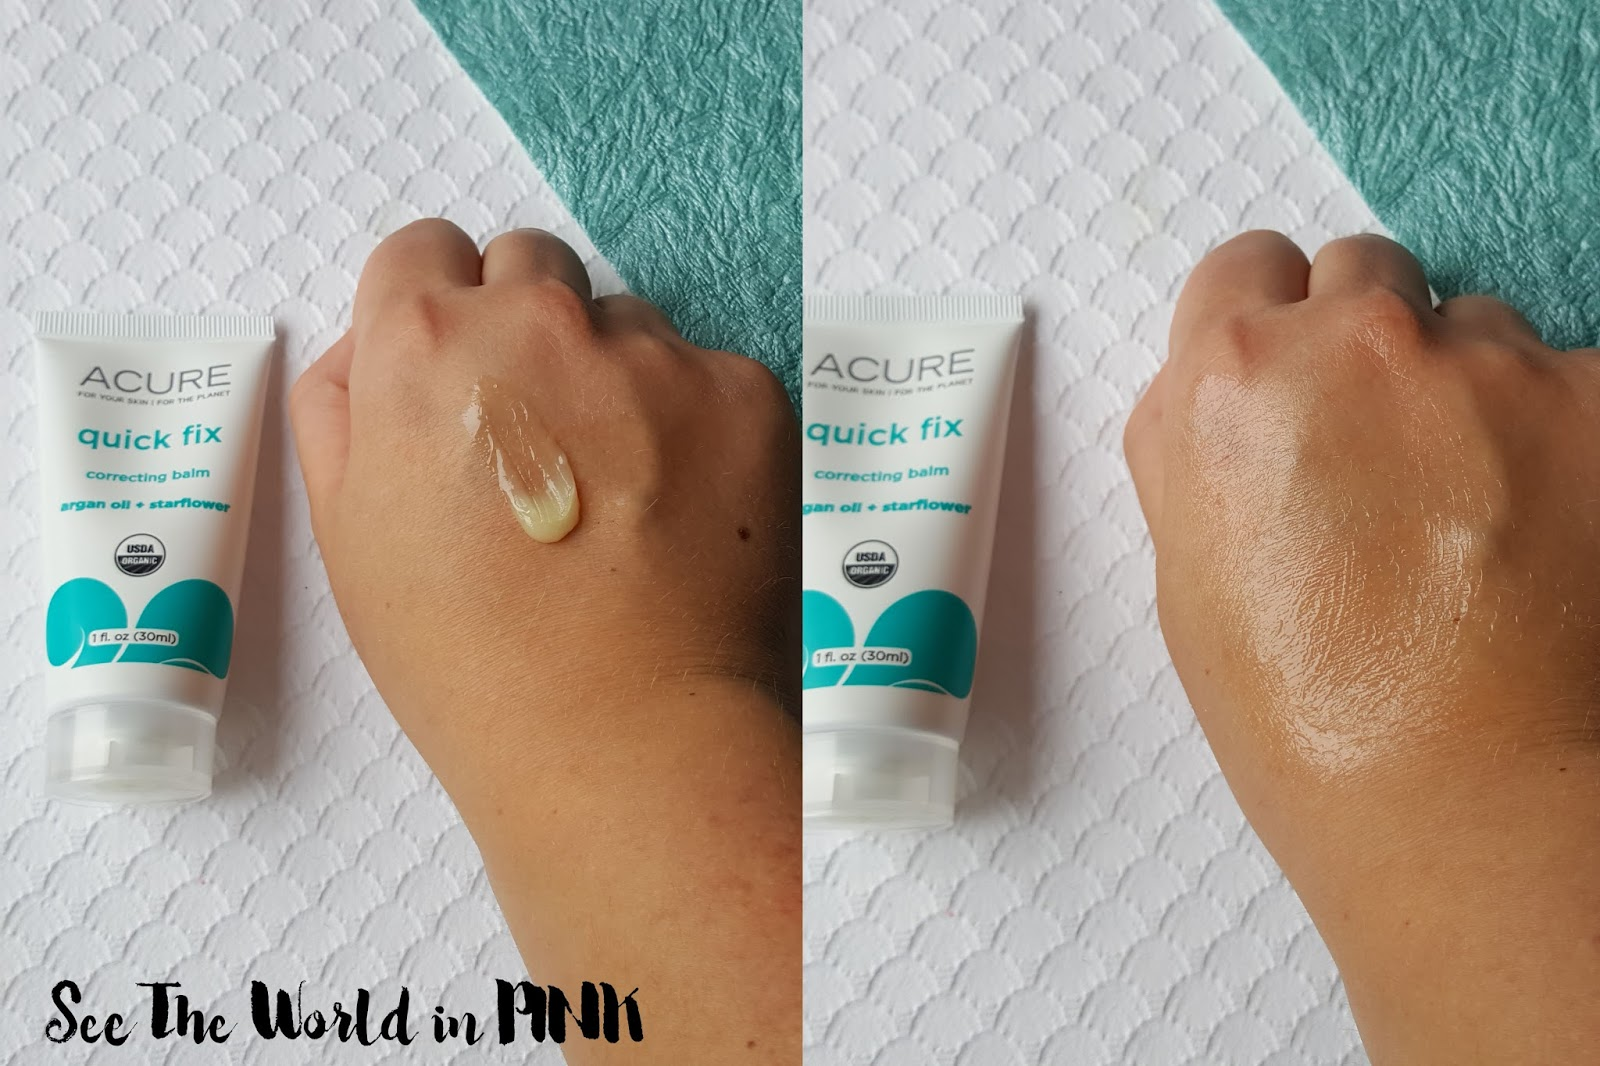 Skincare Sunday - Acure Organics Body Lotions and Correcting Balm Reviews